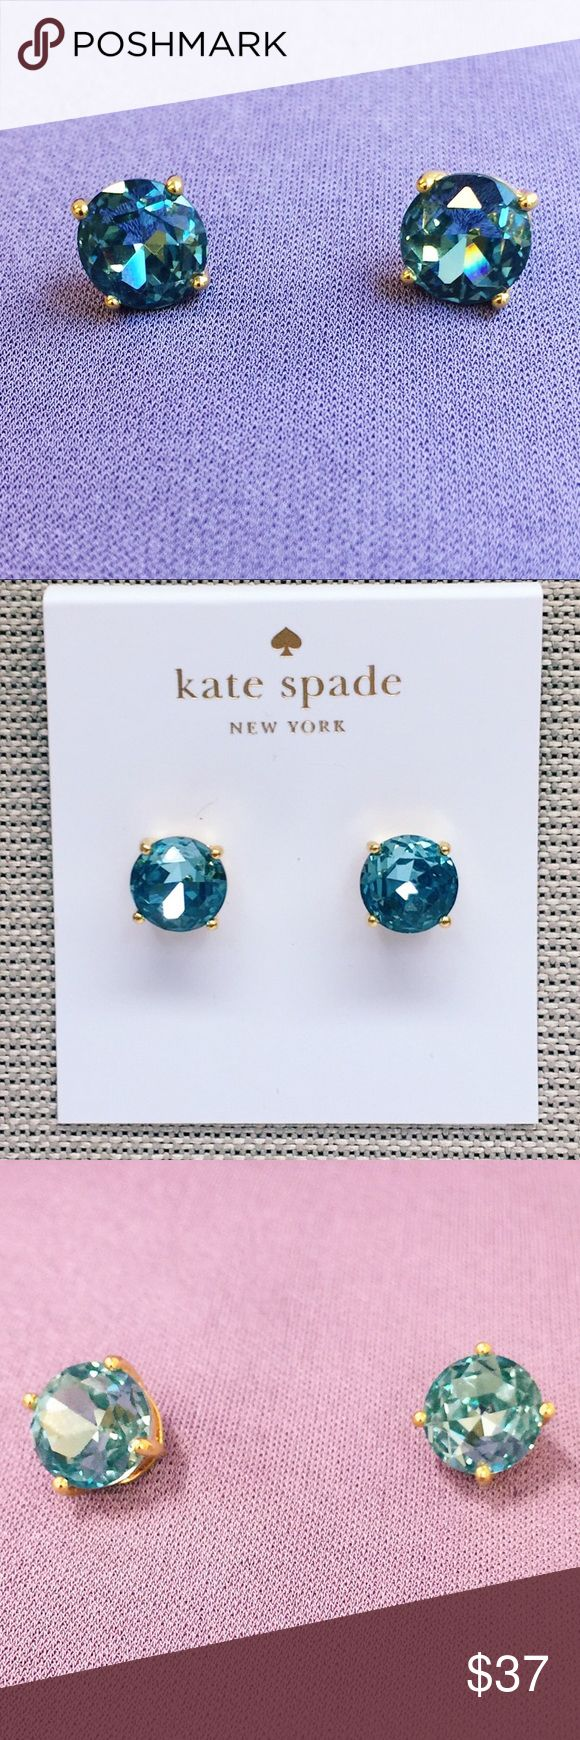 """Kate Spade Blue Gum Drop Stud Earrings Beautiful pair of brand new Kate Spade New York earrings. 2 gorgeous faceted blue stones (approximately 4/8"""" diameter) are set in gold plated silver. Post backs. The color is called """"Grace Blue"""" and changes from an almost turquoise to darker blue depending on the light. Super sparkly! kate spade Jewelry Earrings"""